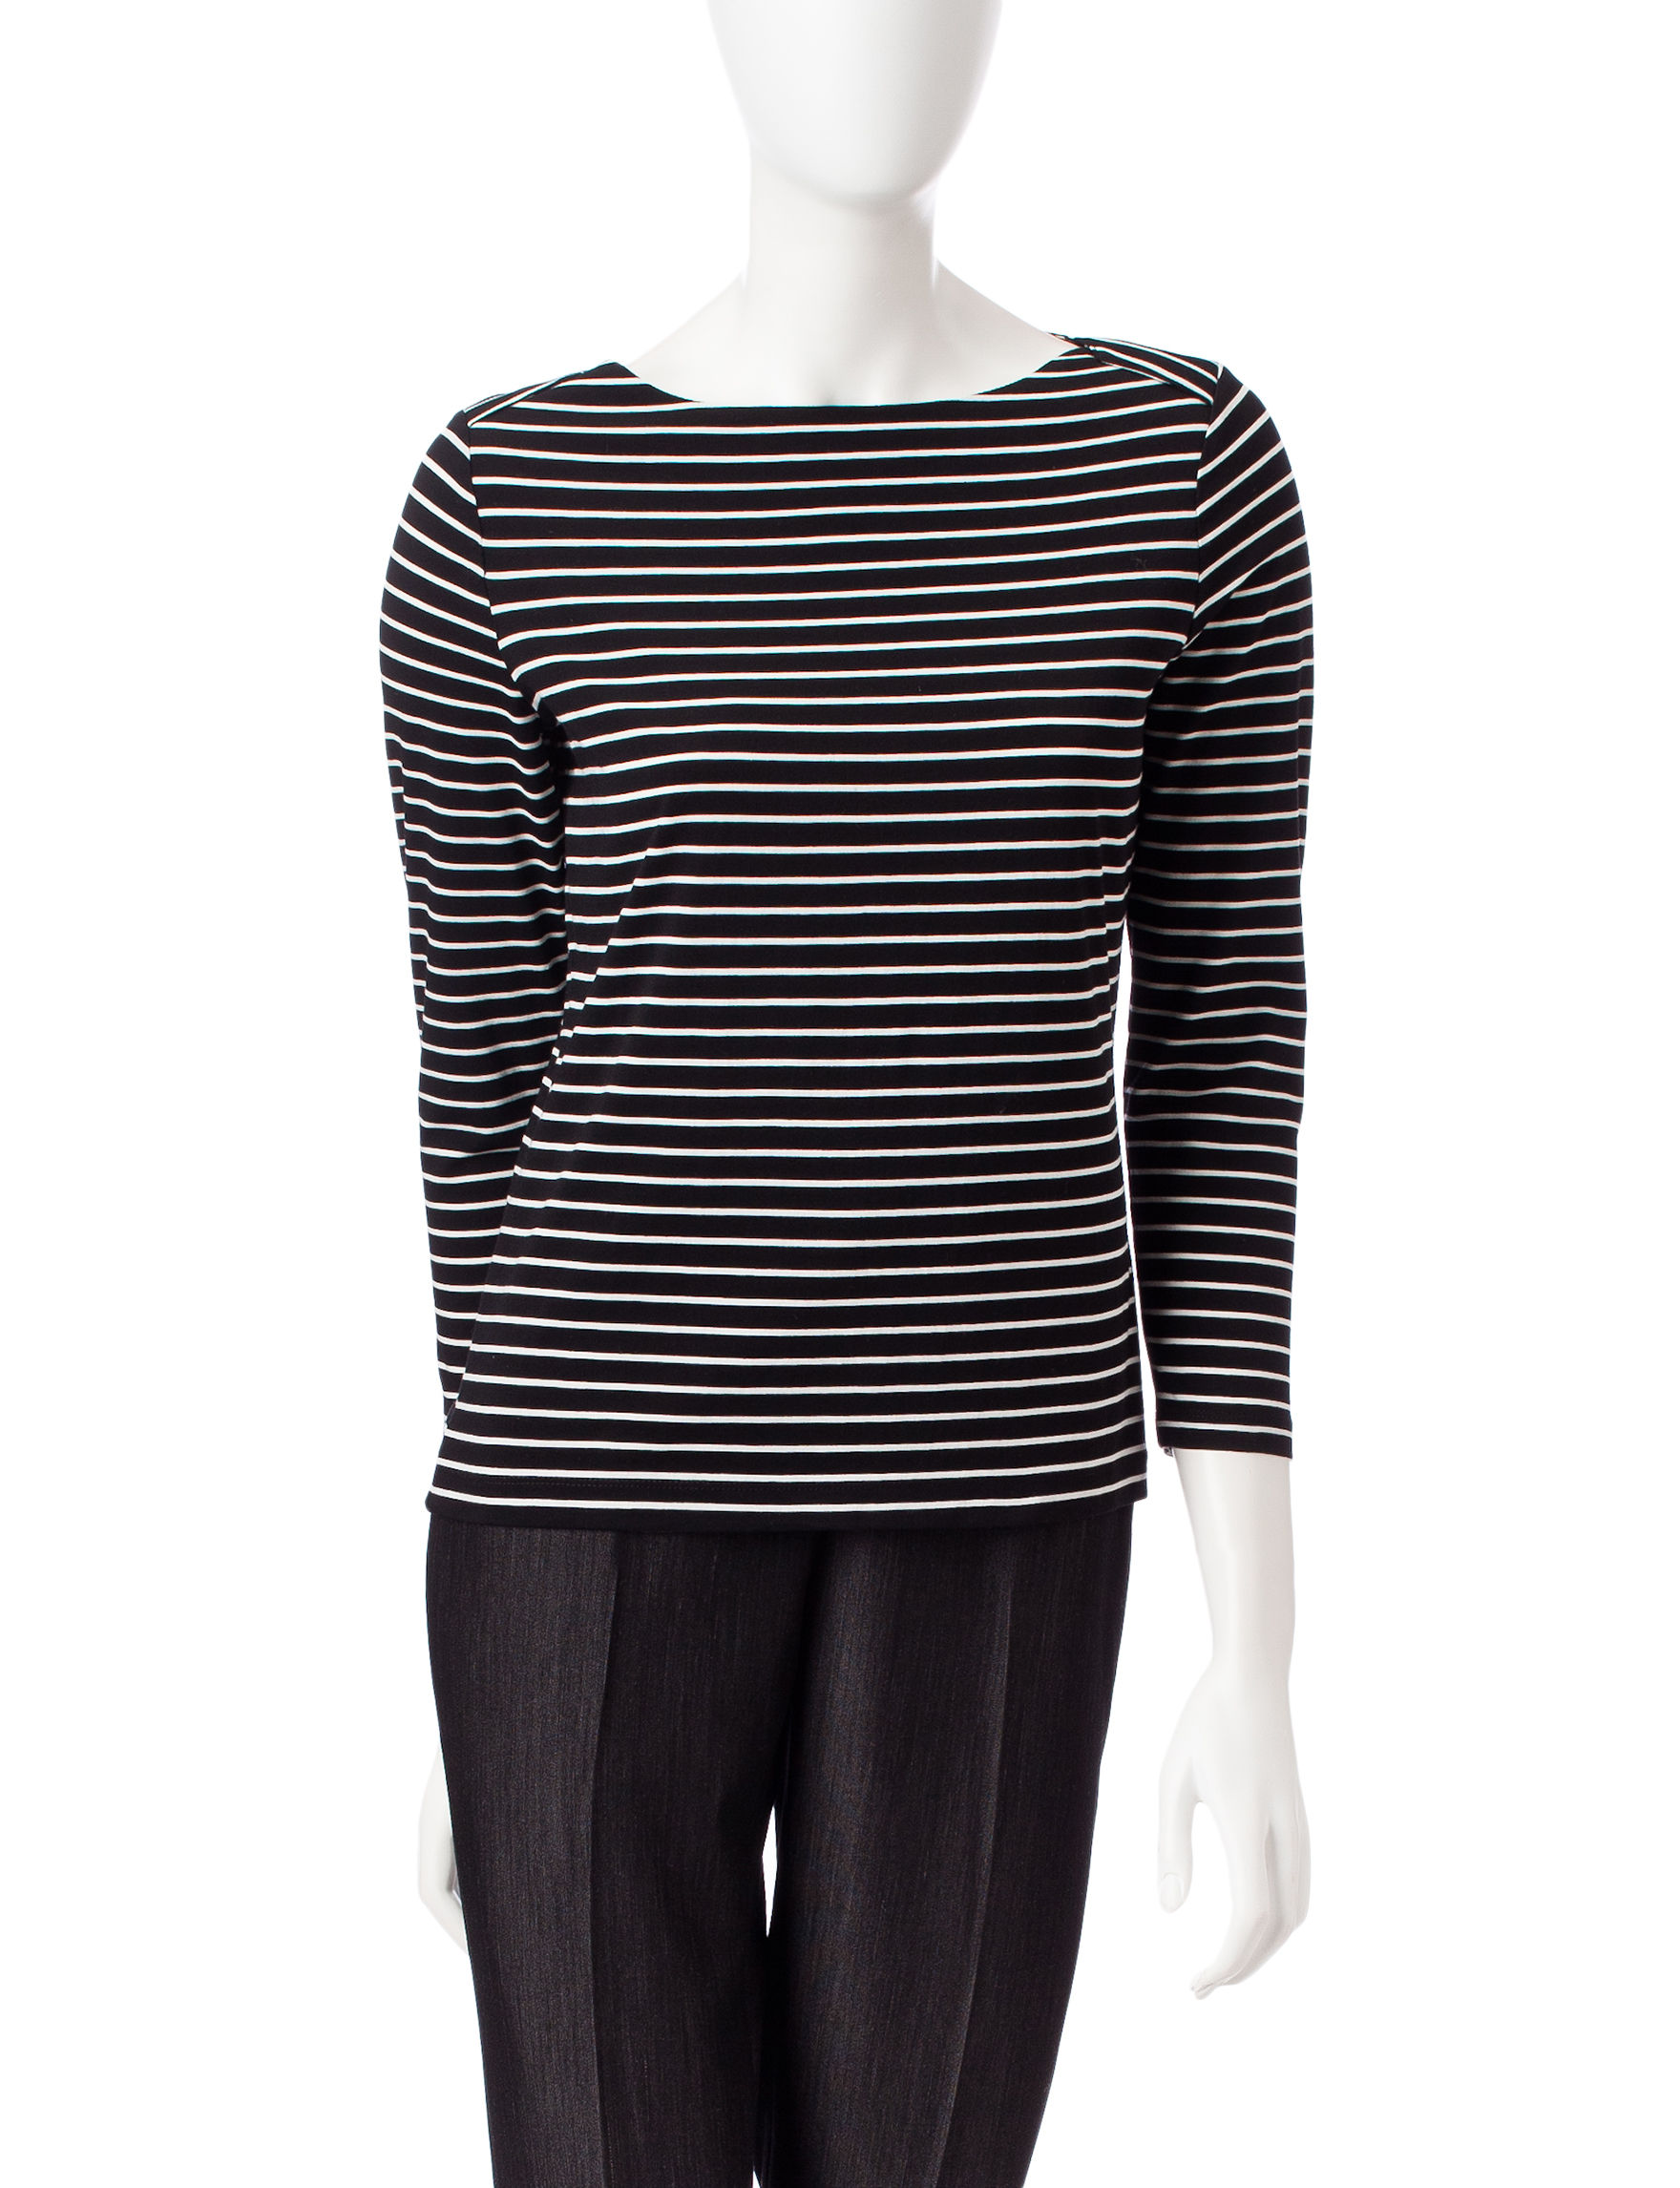 Anne Klein Black / White Pull-overs Shirts & Blouses